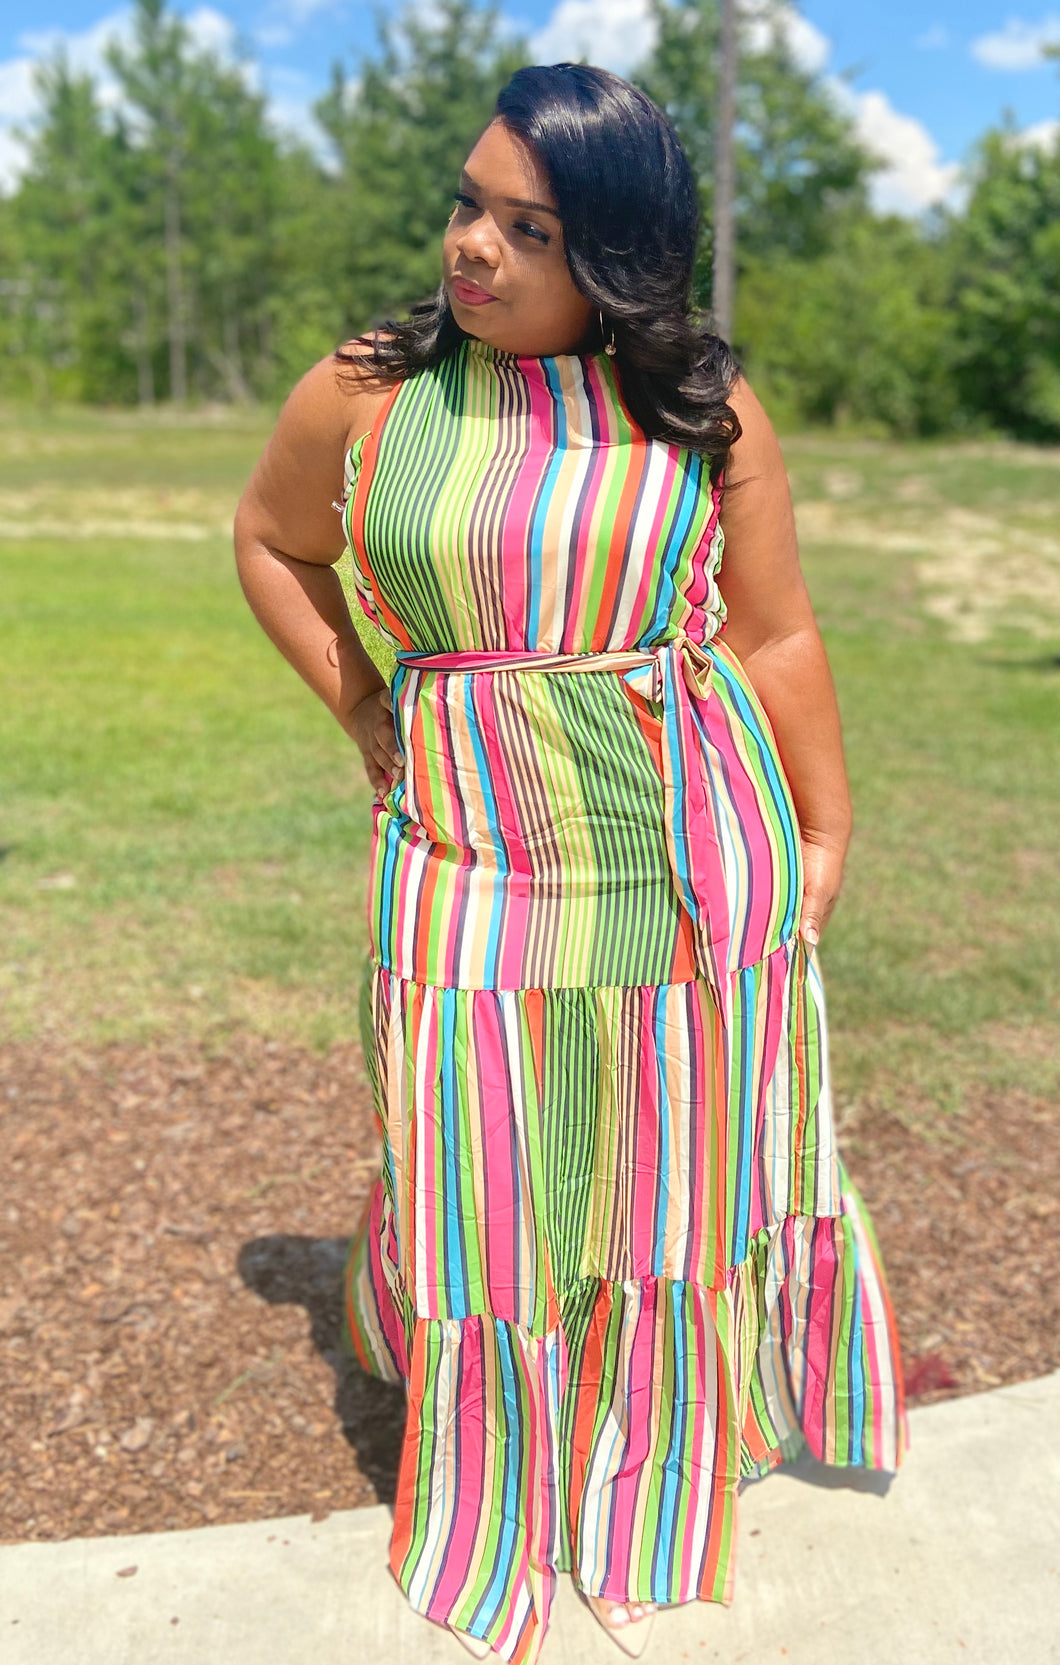 The Stripes Dress